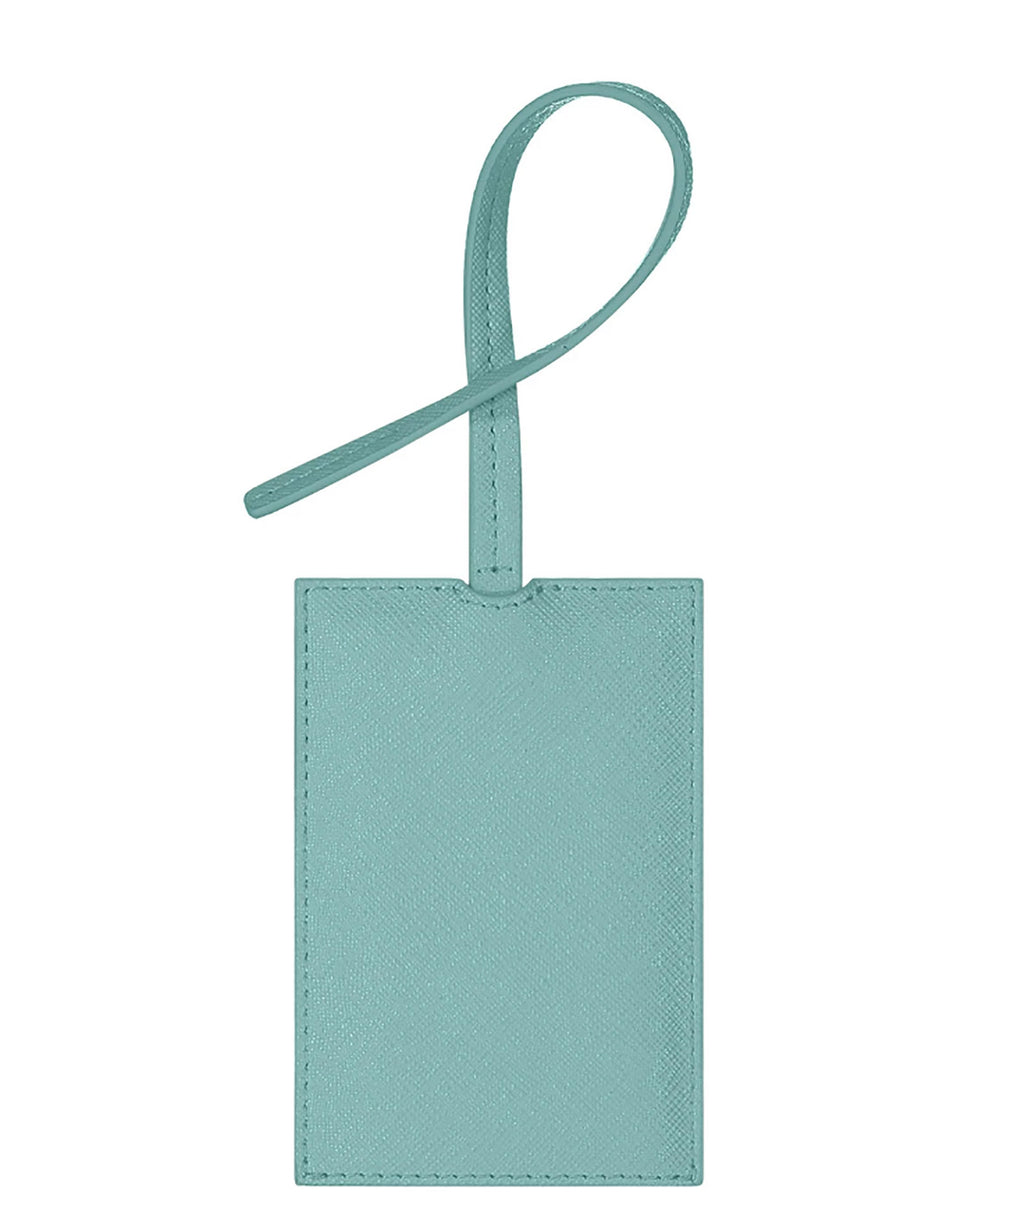 Stoney Clover Cotton Candy Luggage Tag